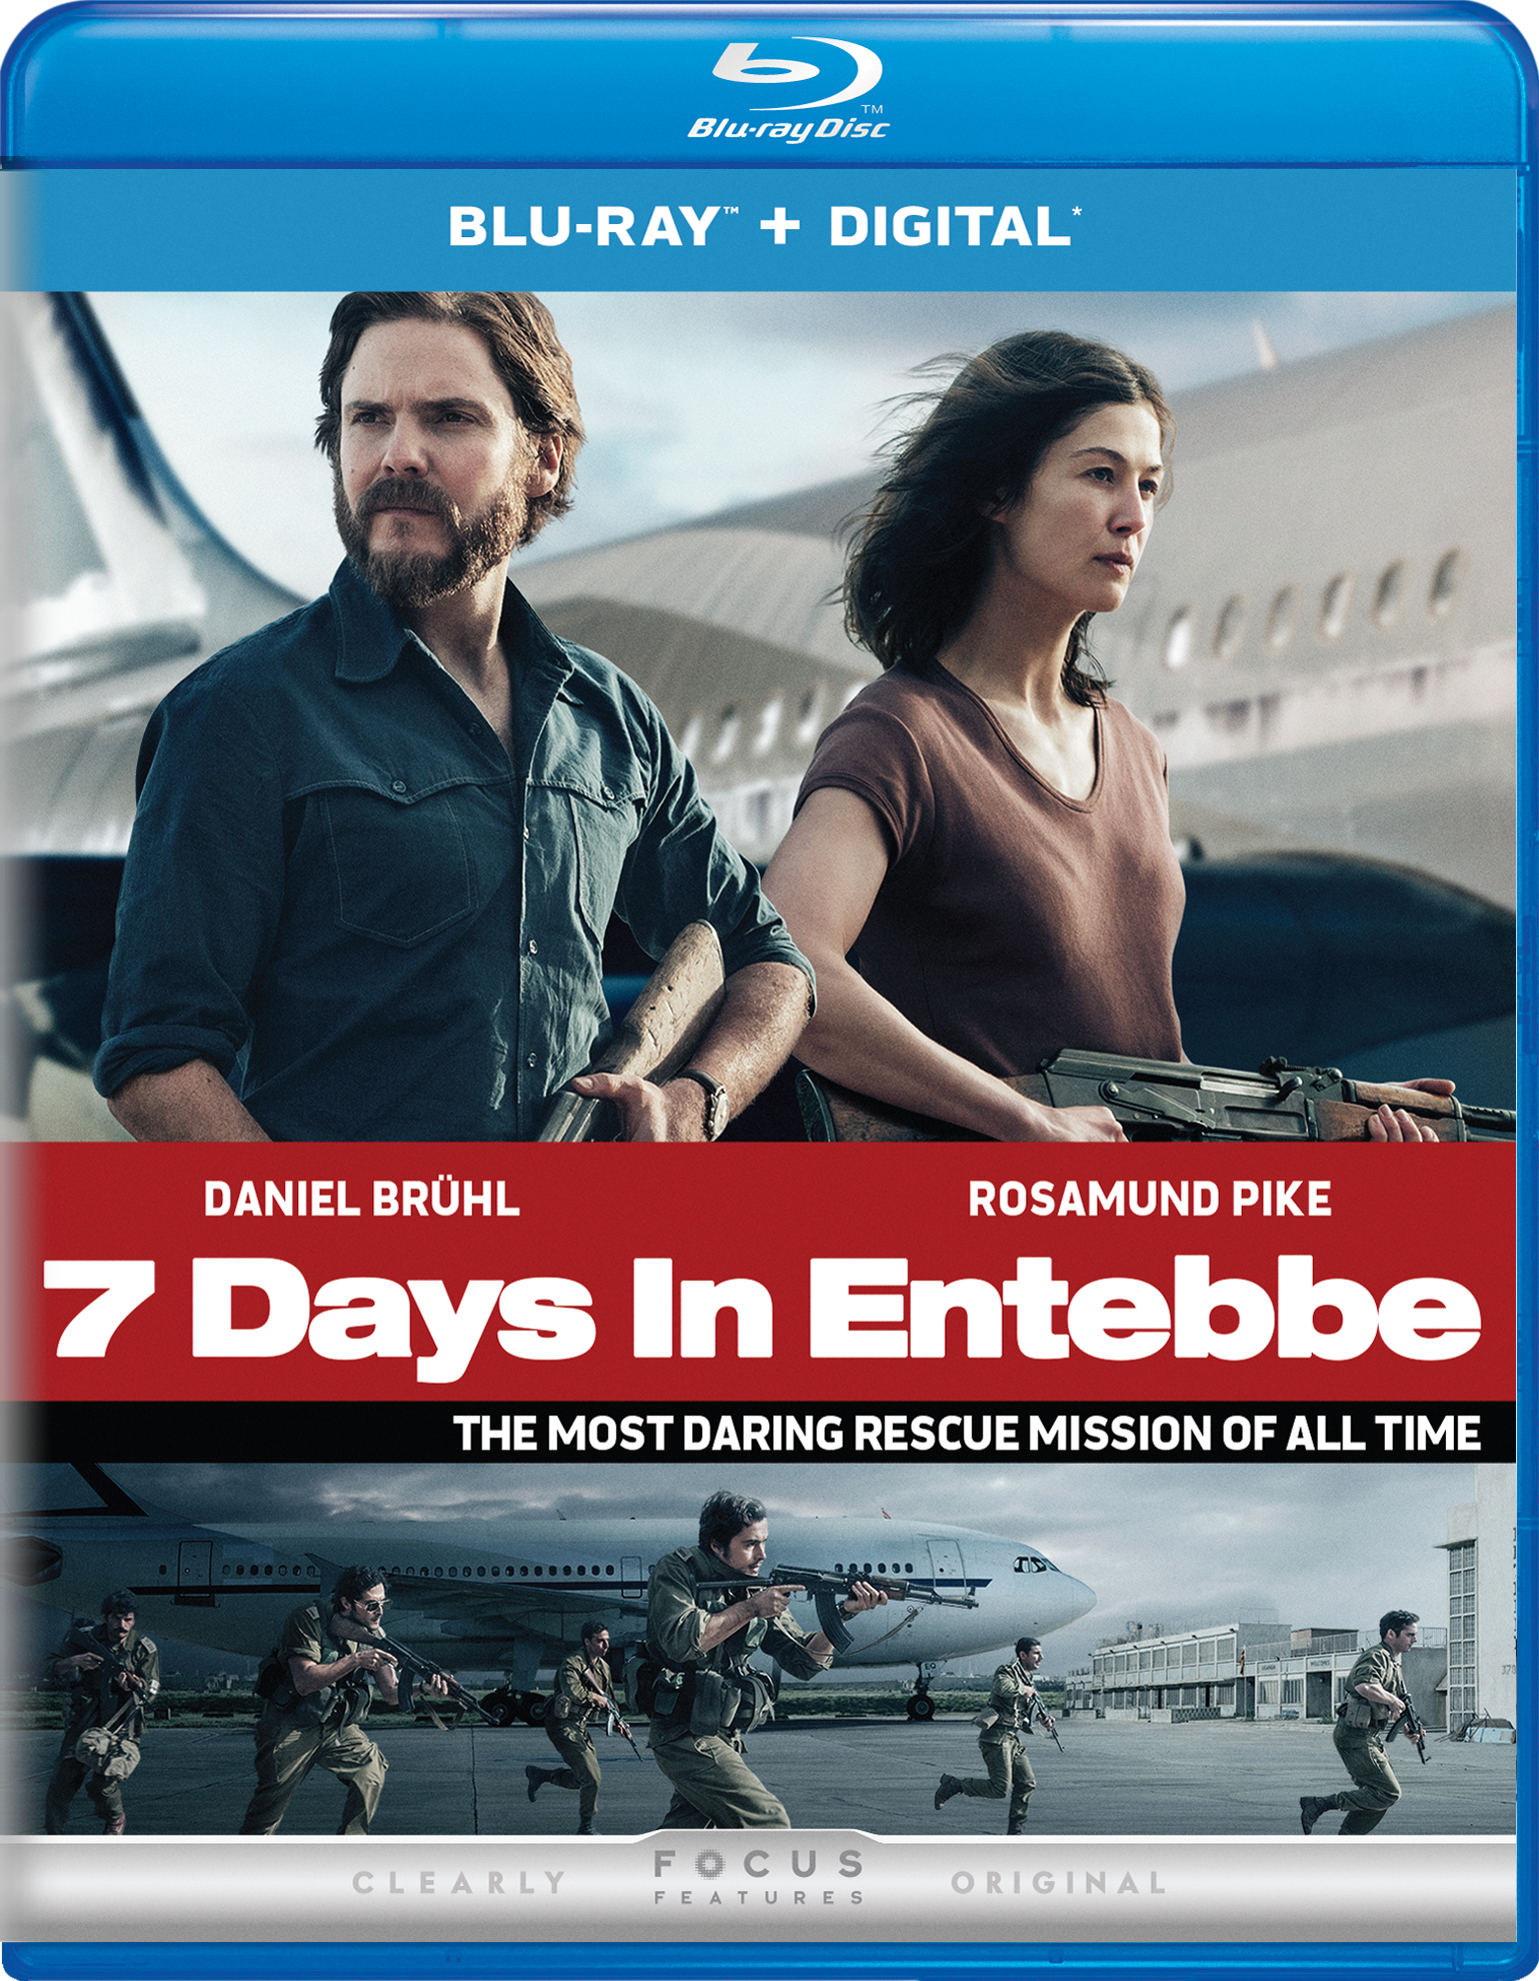 7 Days in Entebbe (2018) Blu-ray